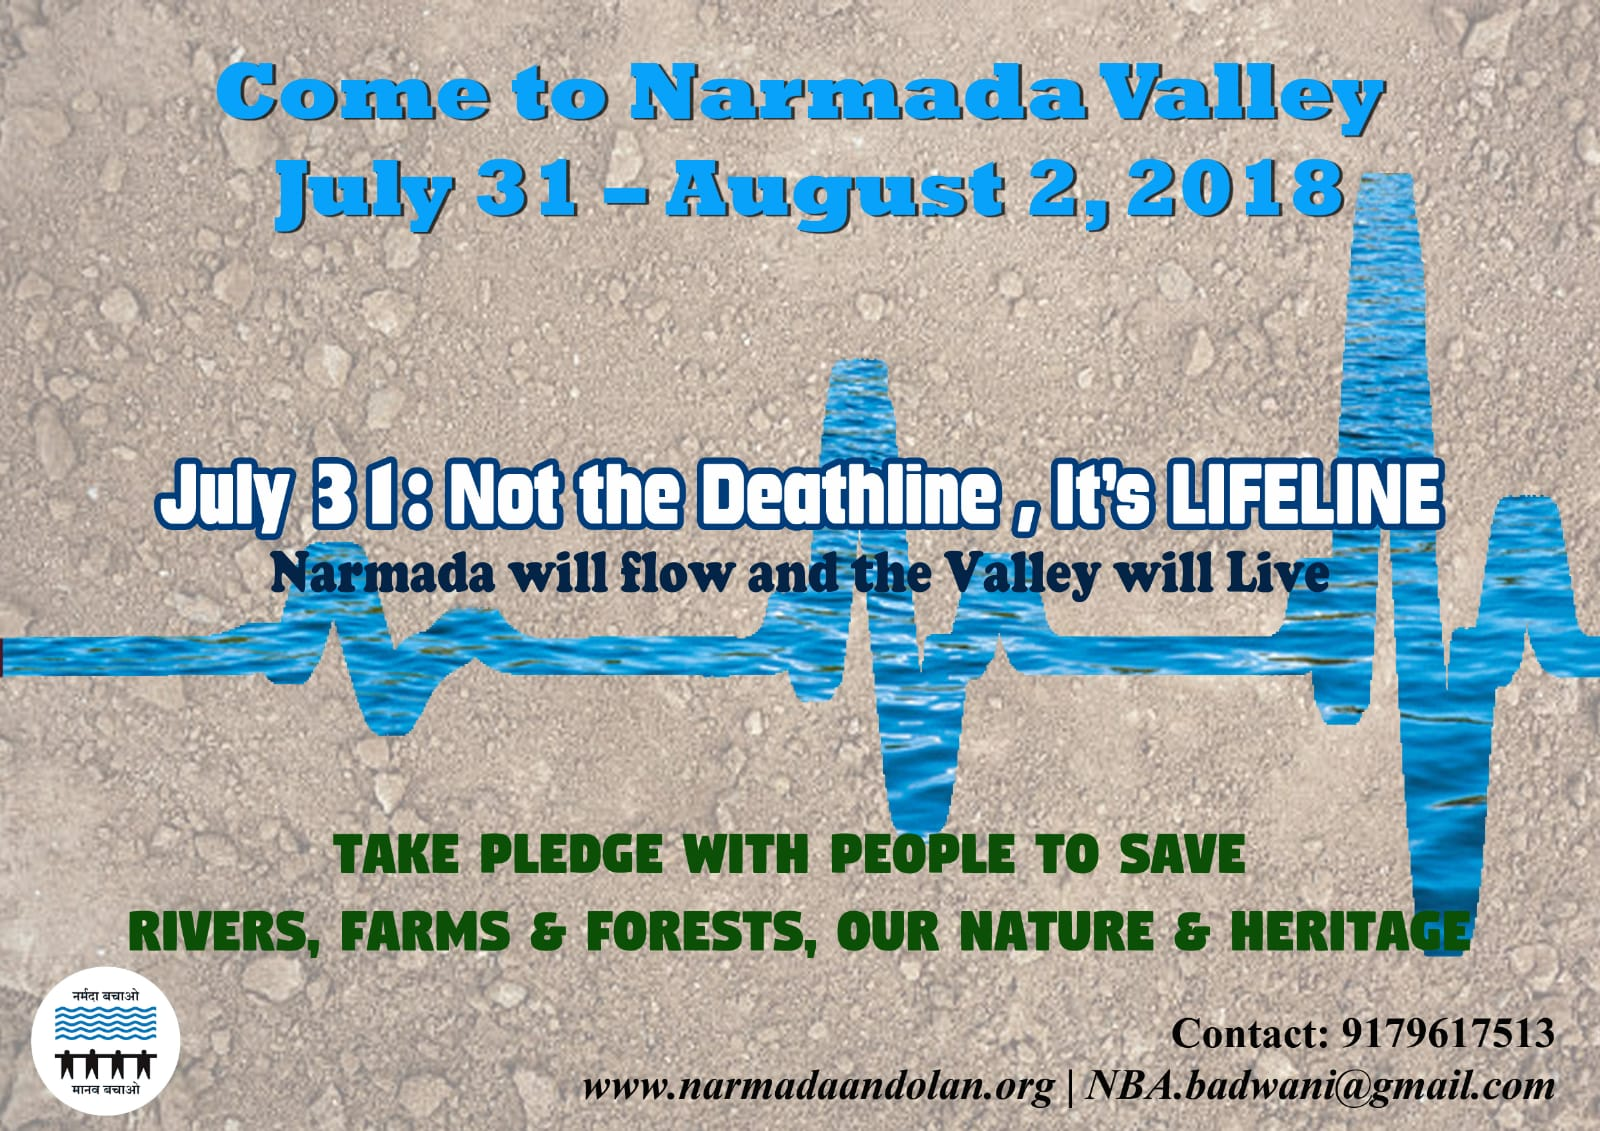 The Call of Narmada